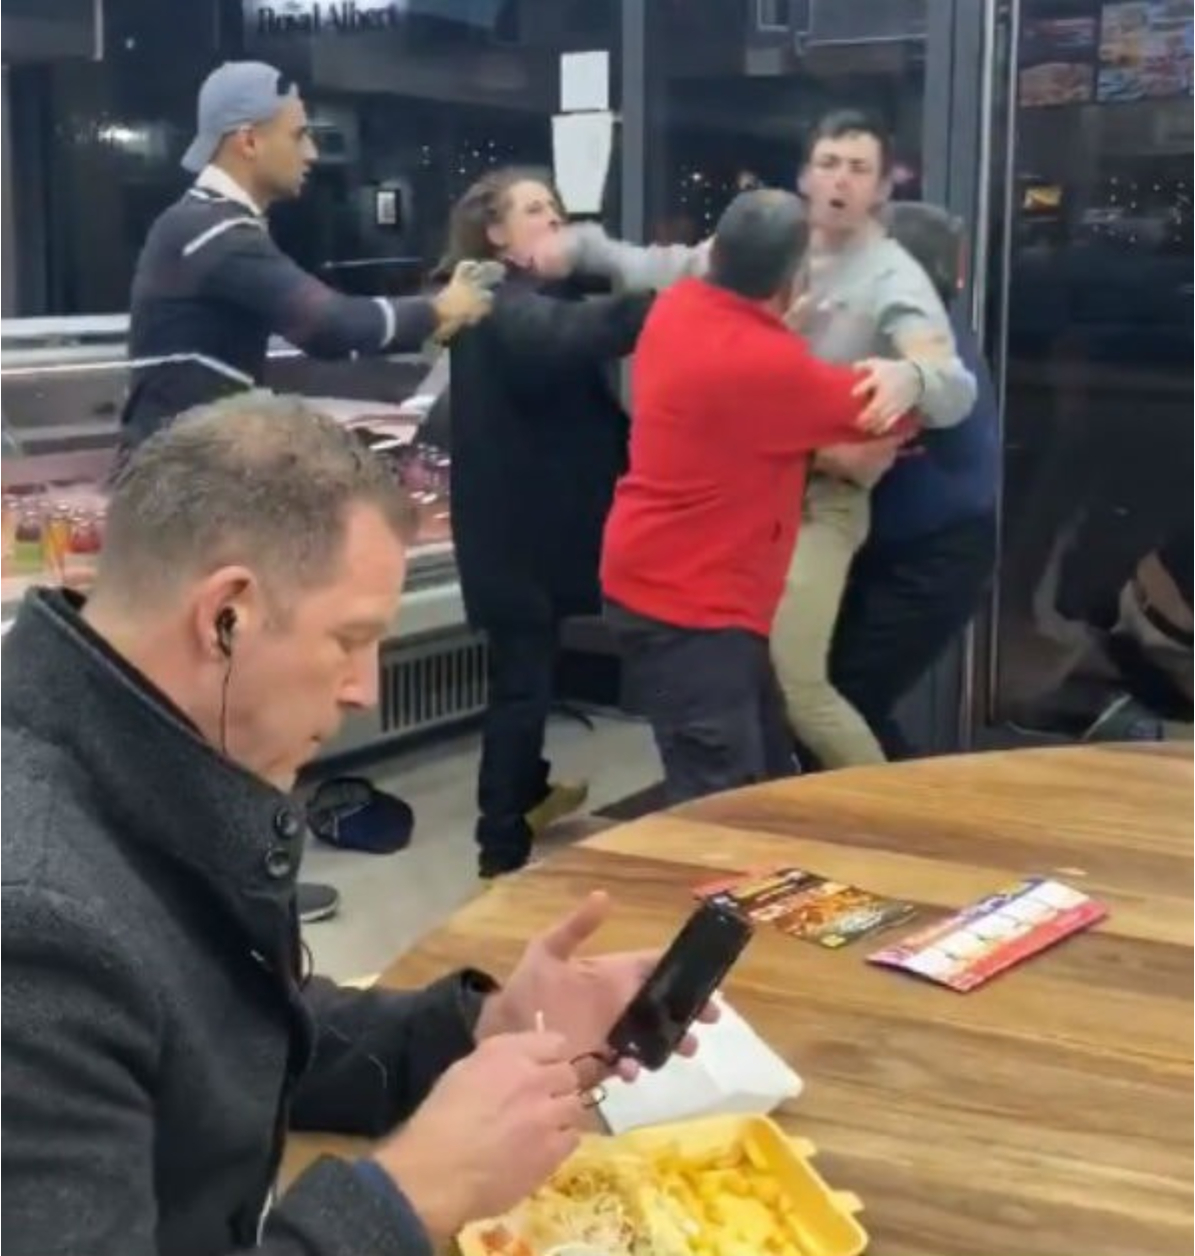 Man Calmly Eating Kebab in Shop During Fight Meme Template